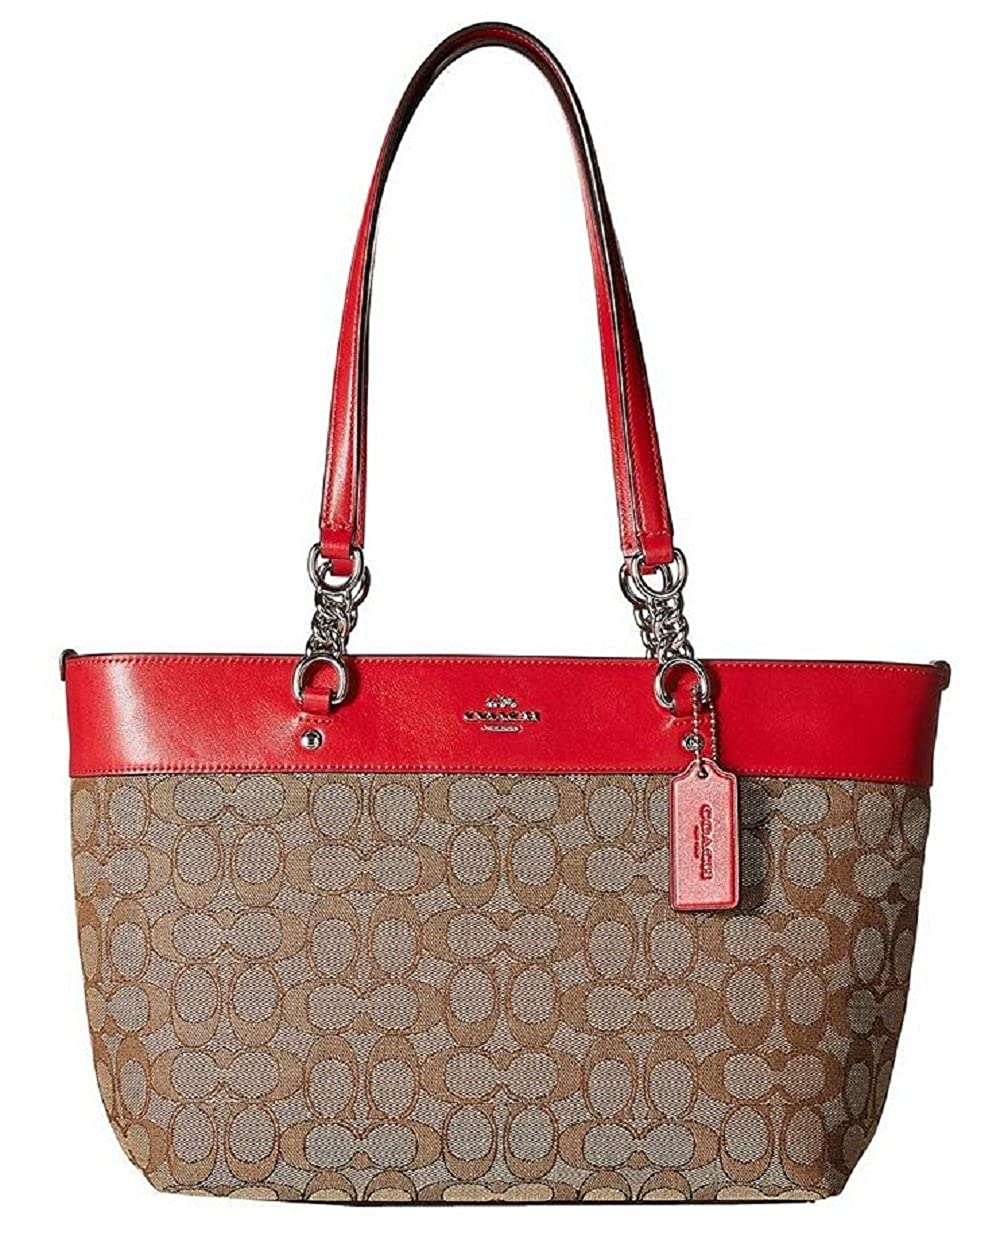 9bc349bb69 Amazon.com: COACH Womens Signature Small Sophia Tote SV/Khaki/True Red Tote:  Shoes